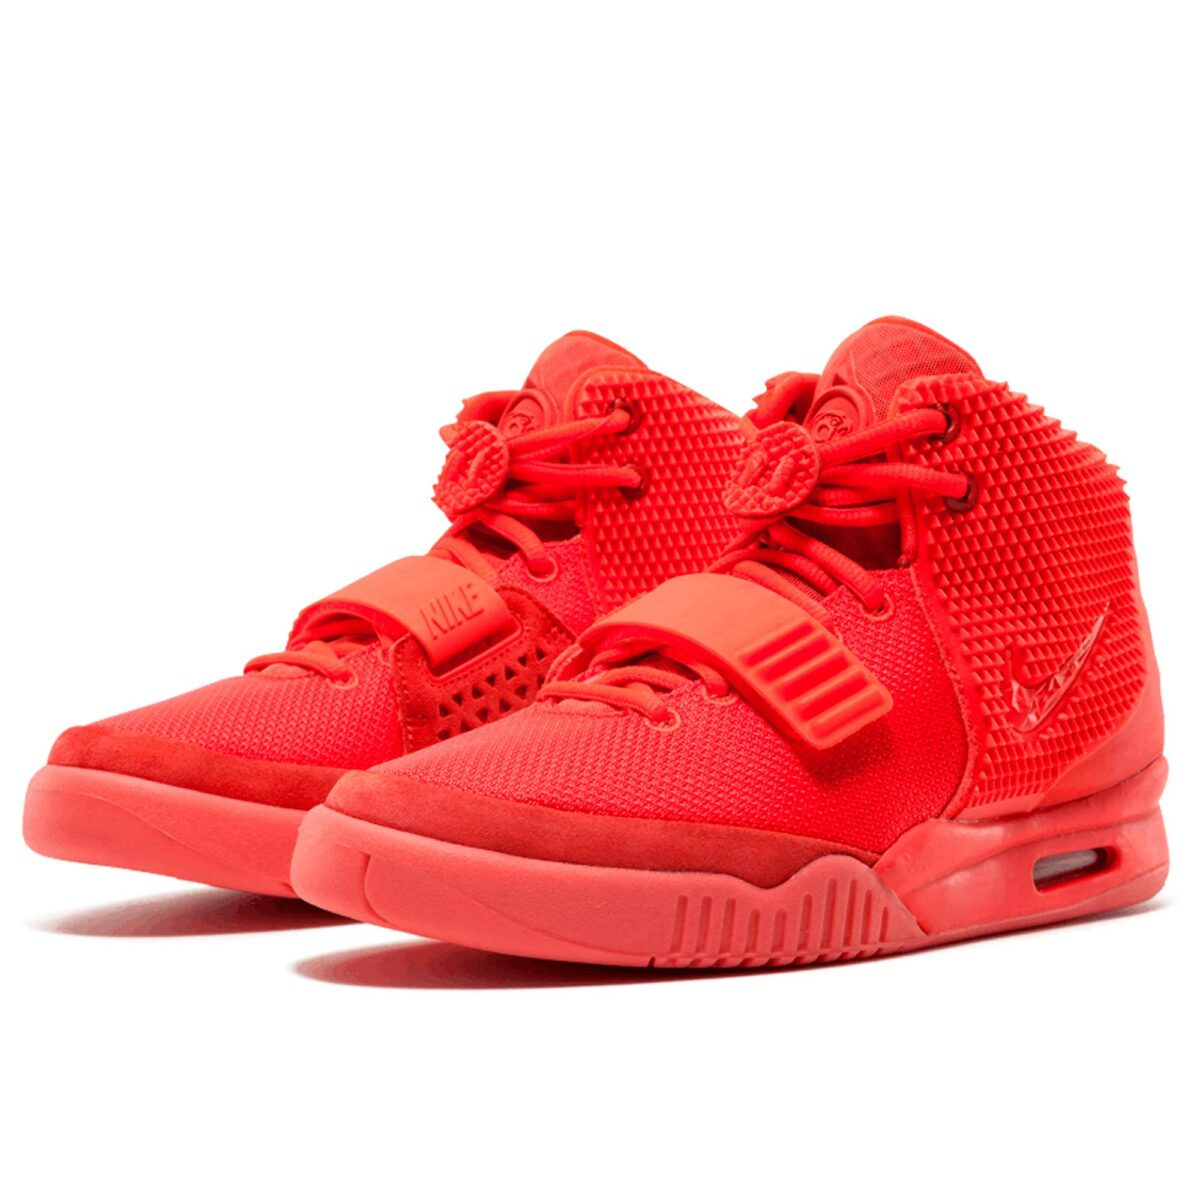 nike air yeezy 2 sp red october купить